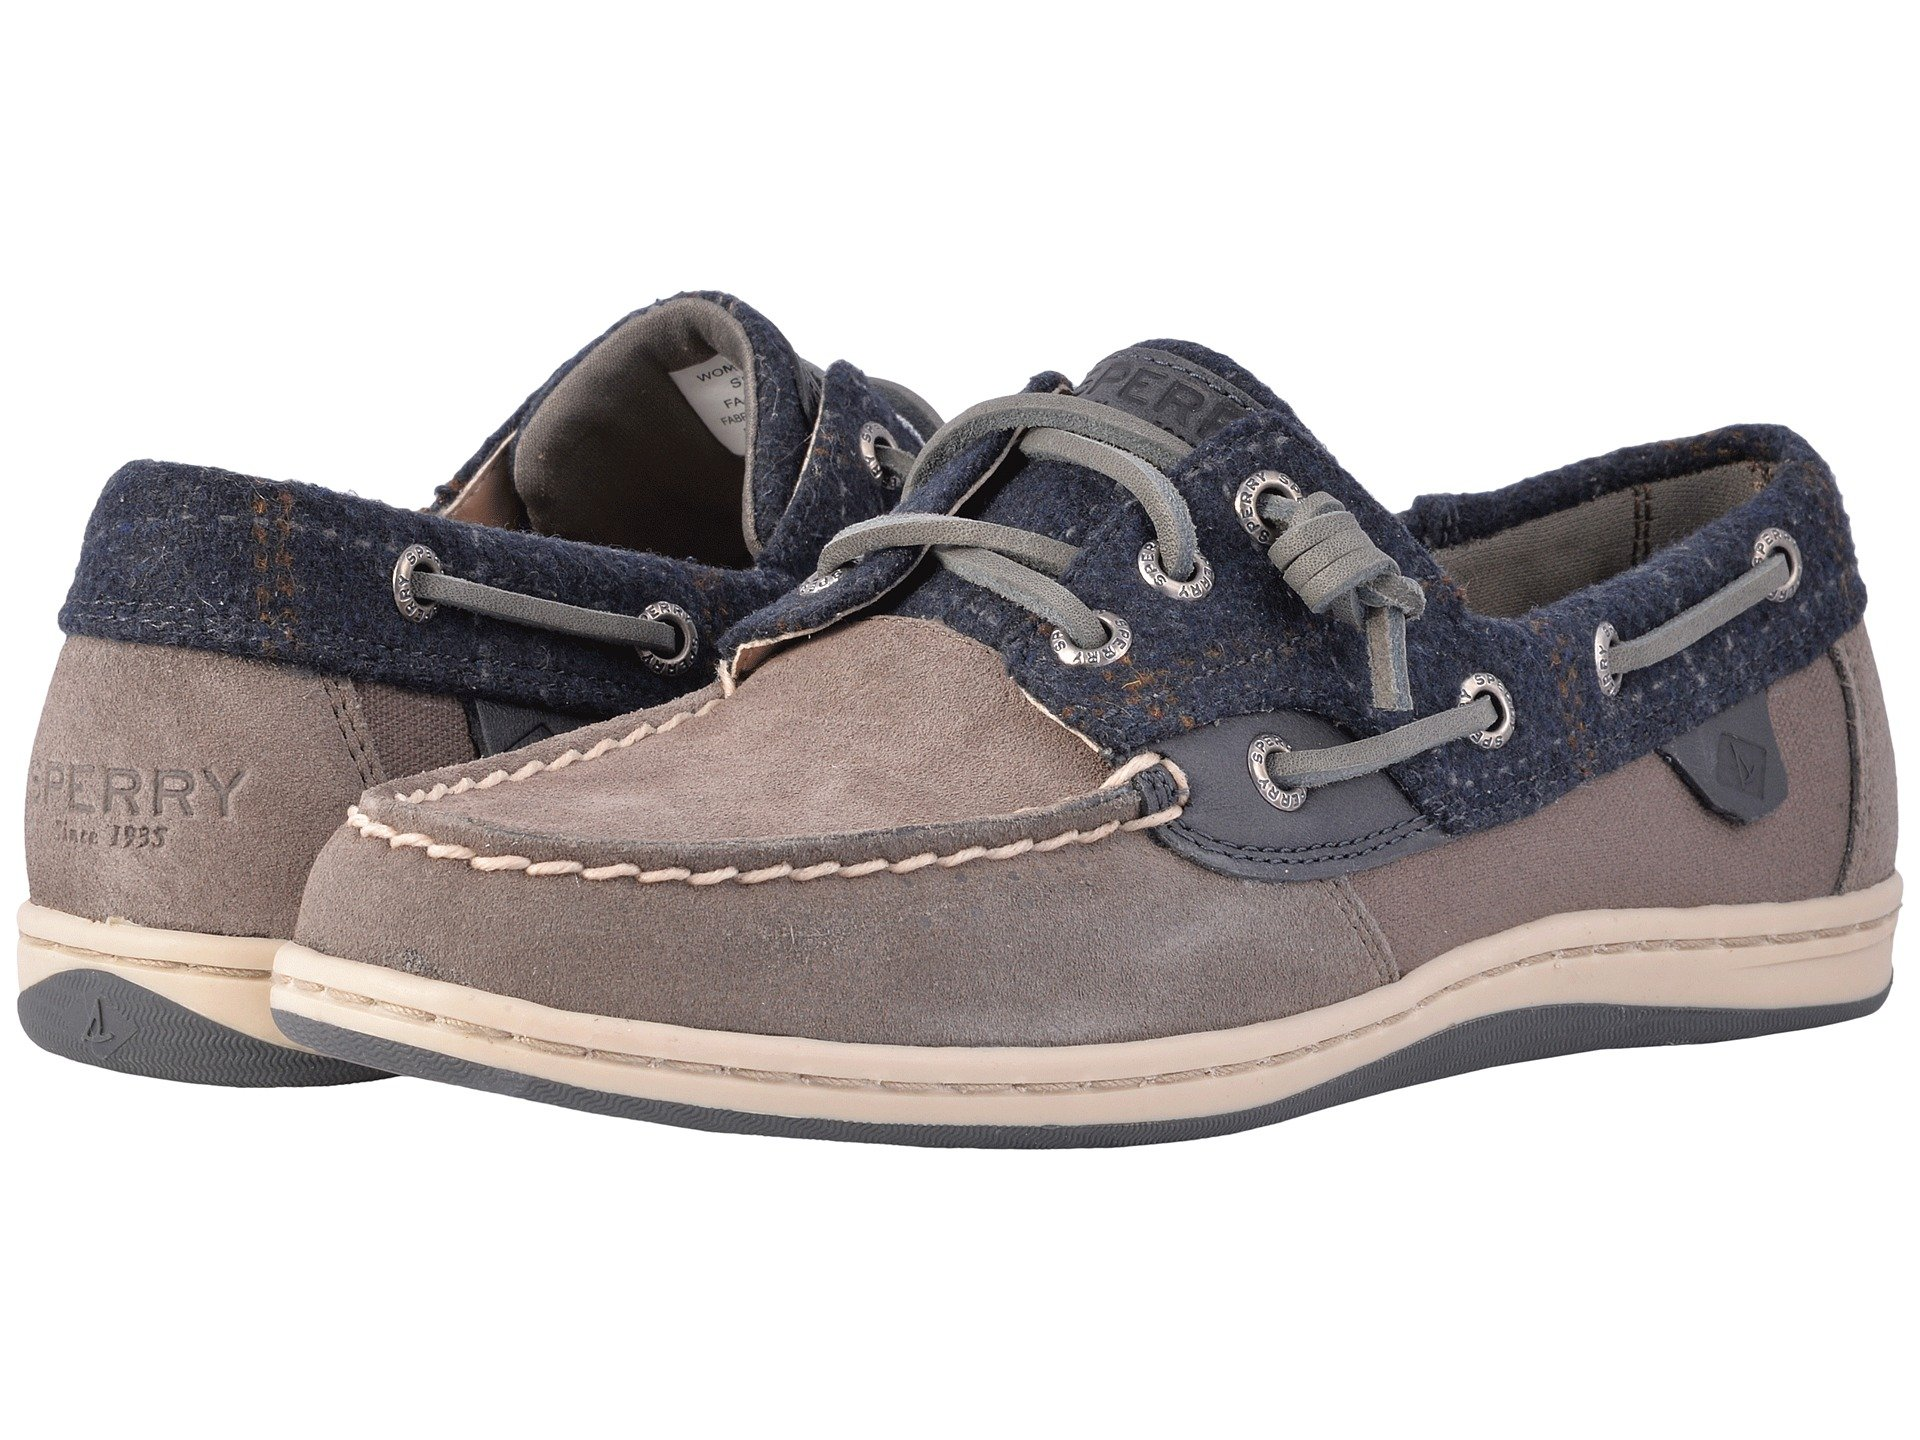 Sperry Songfish Suede Wool kqhSh